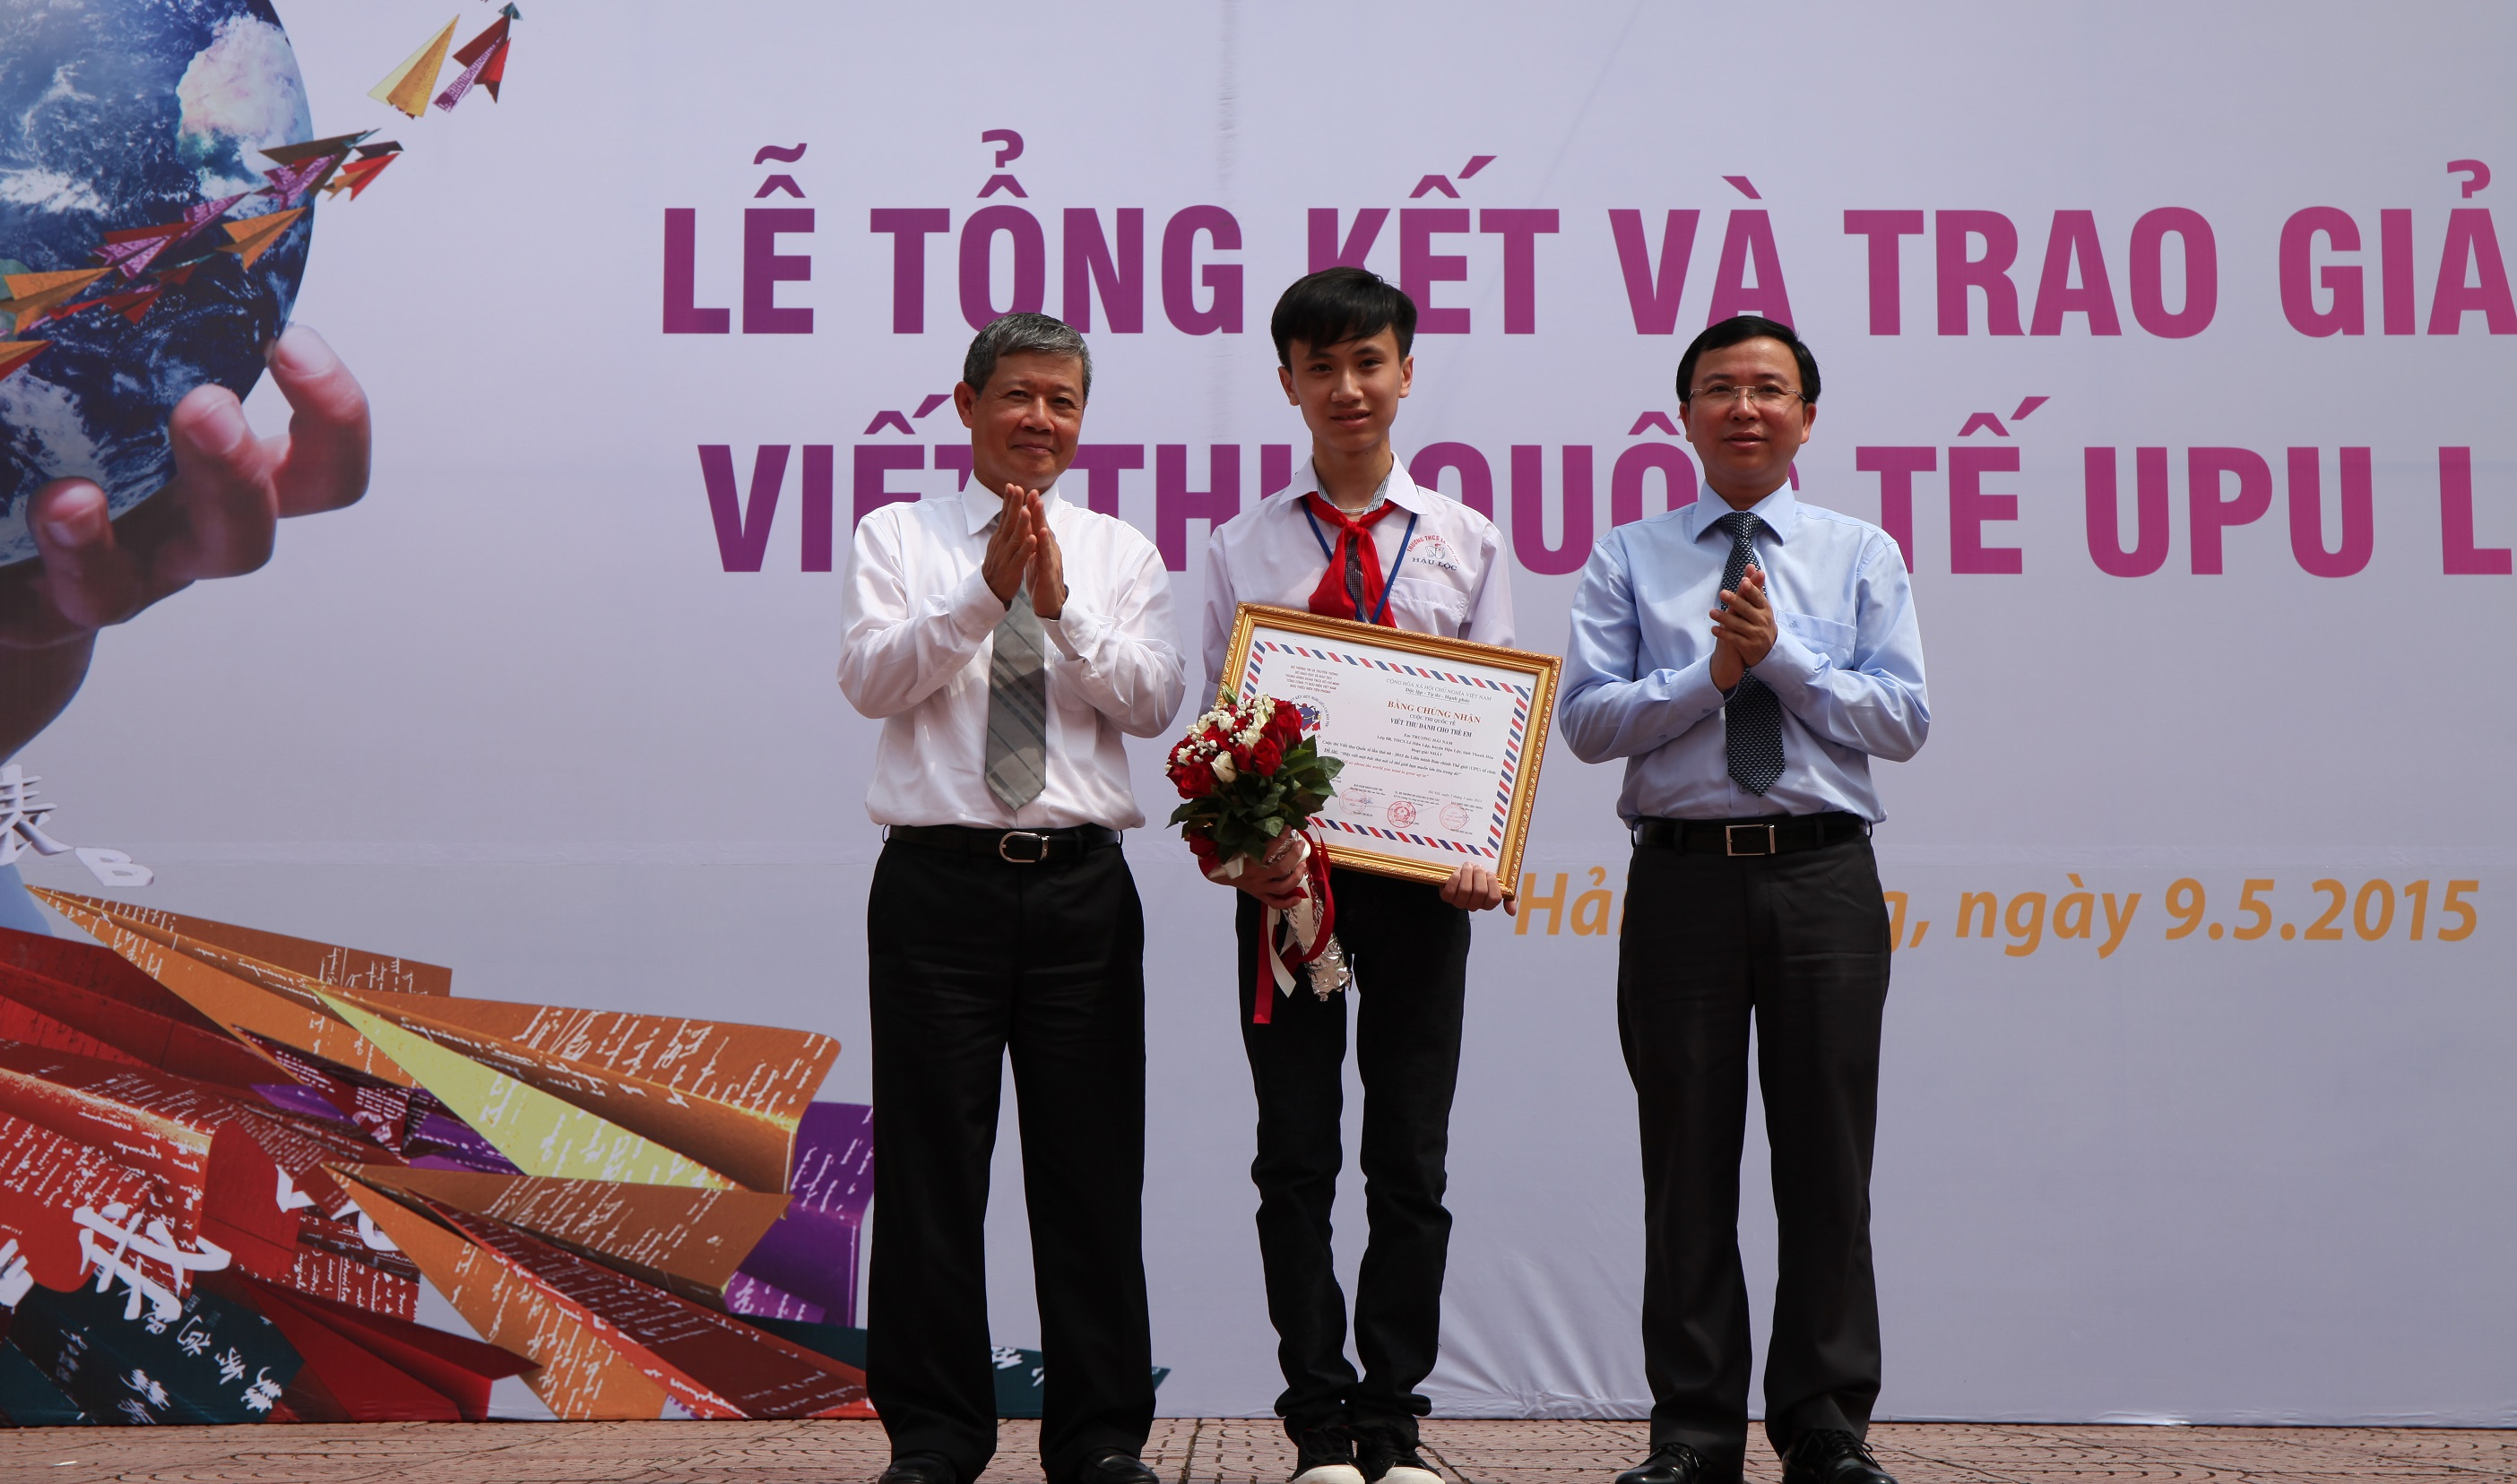 Eighth grader wins national UPU letter-writing contest